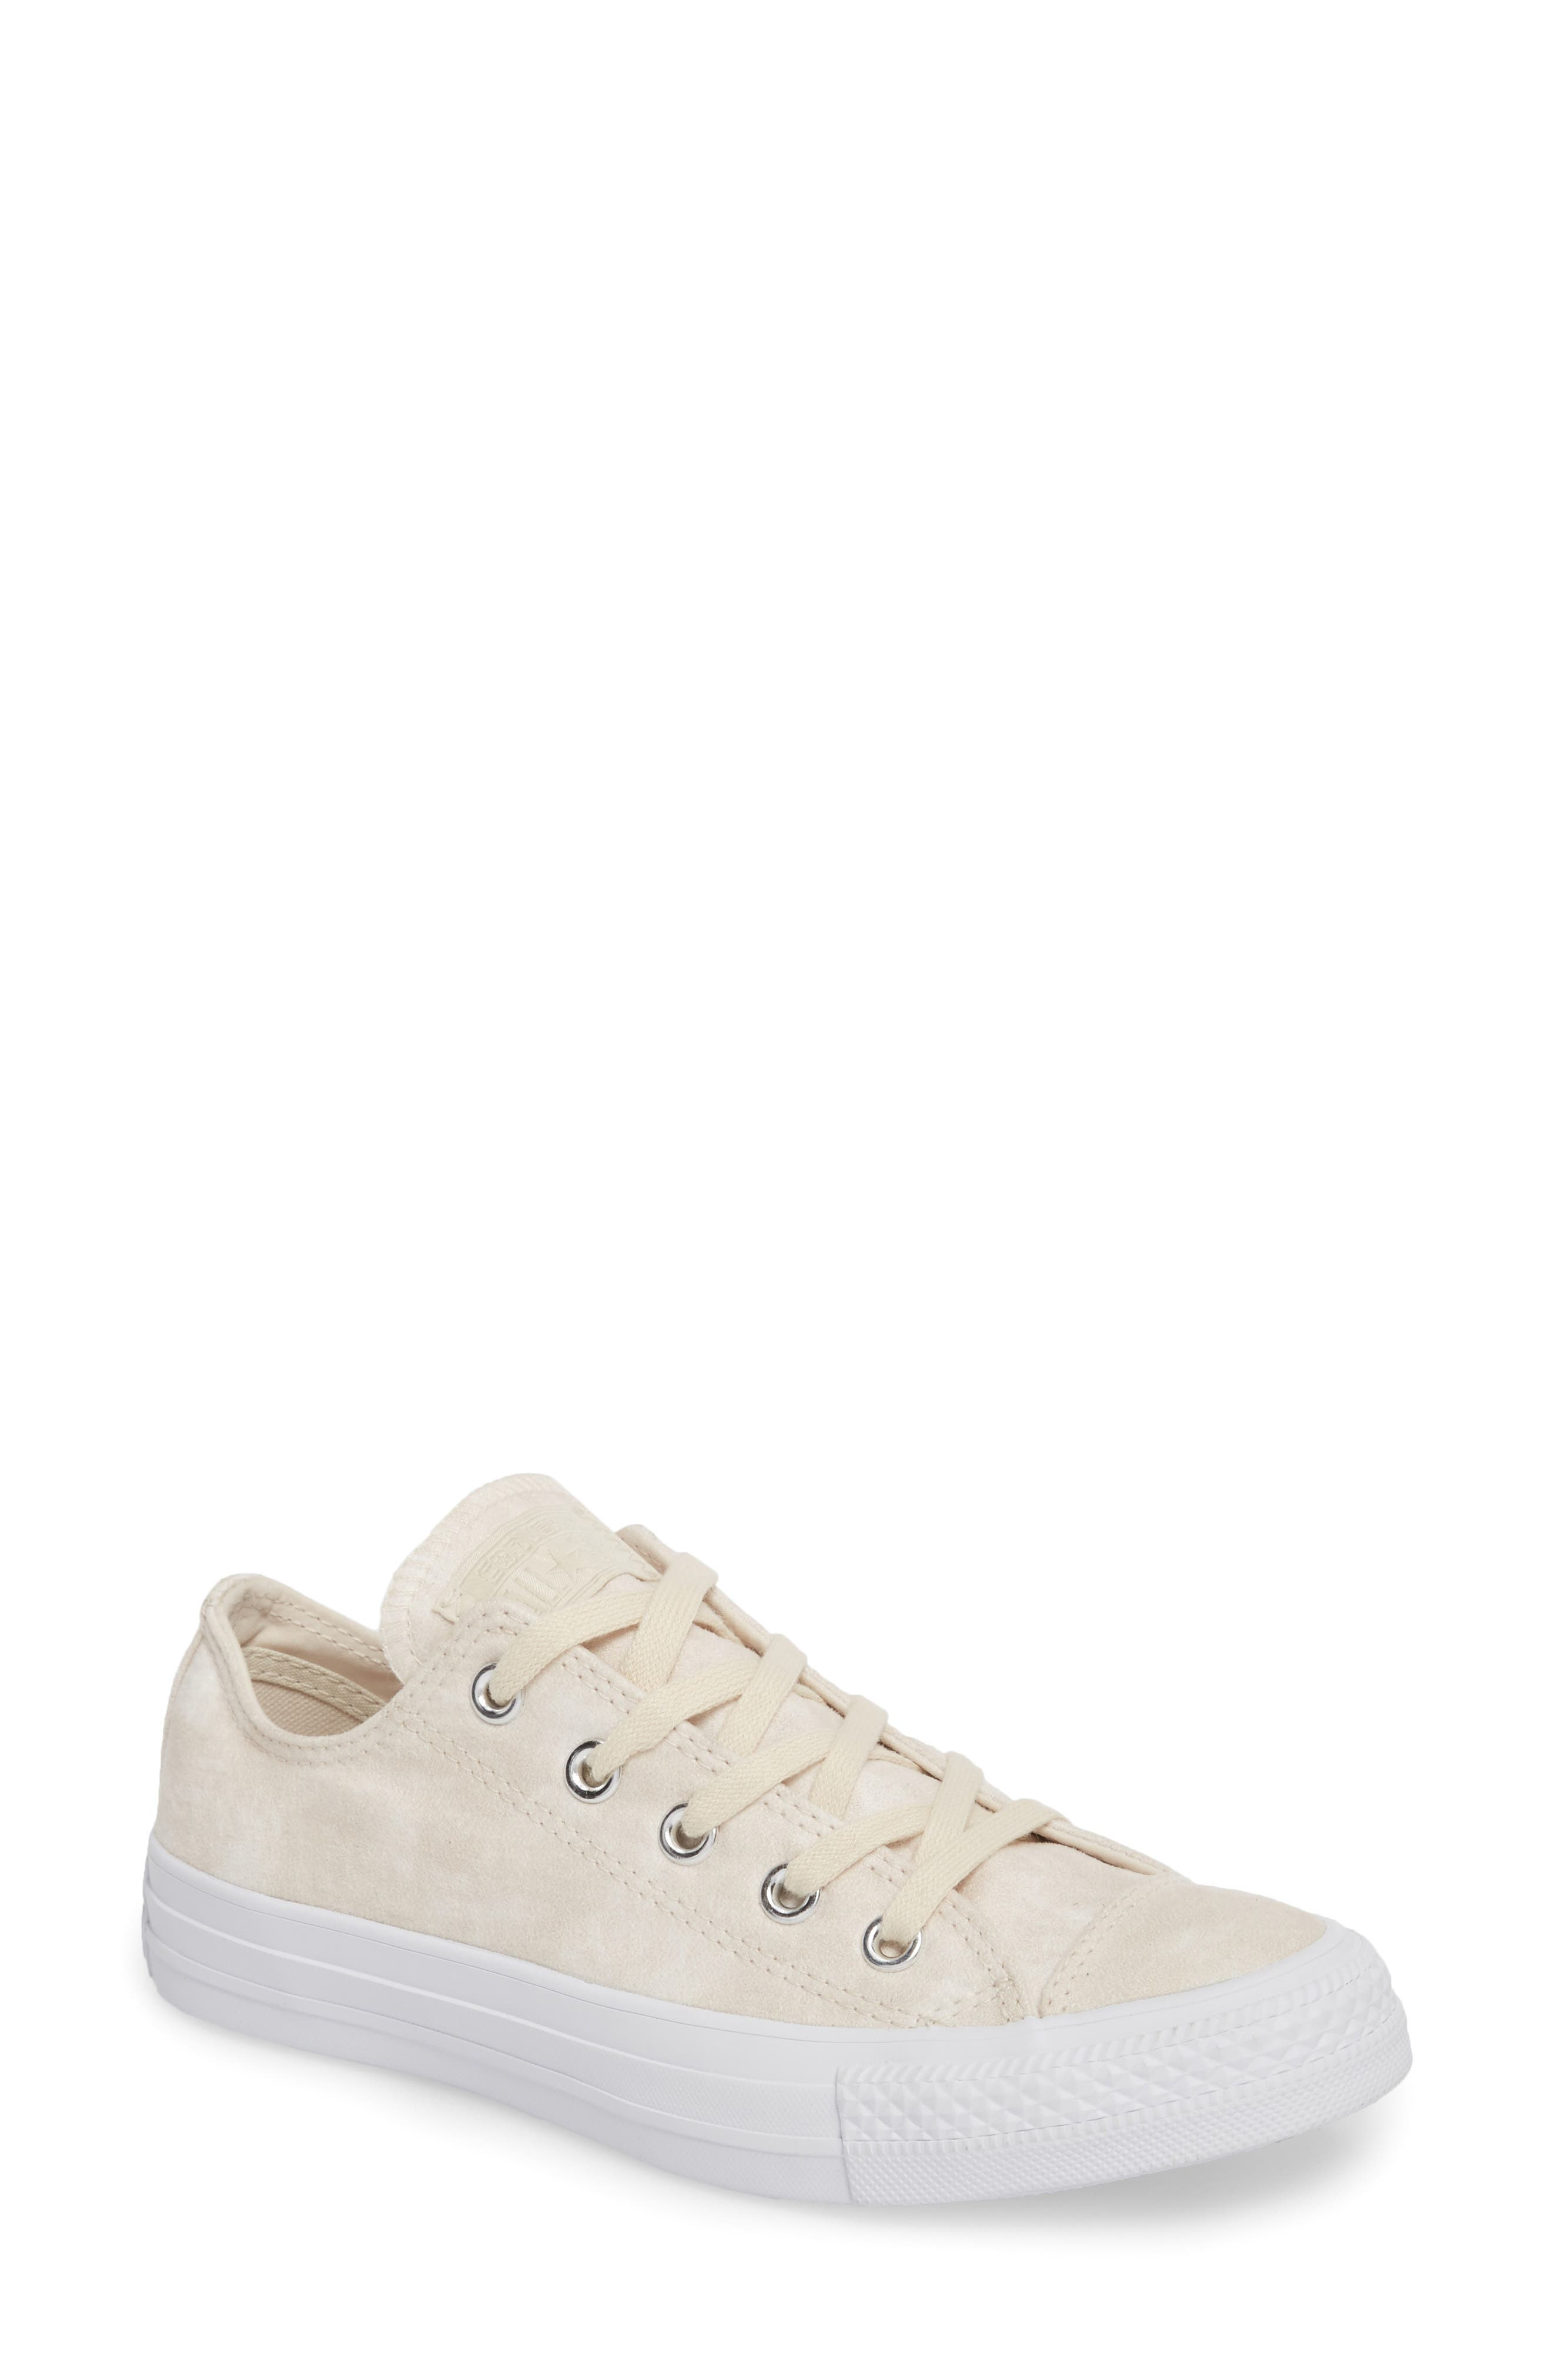 Chuck Taylor<sup>®</sup> All Star<sup>®</sup> Peached Low Top Sneaker,                             Main thumbnail 1, color,                             Driftwood